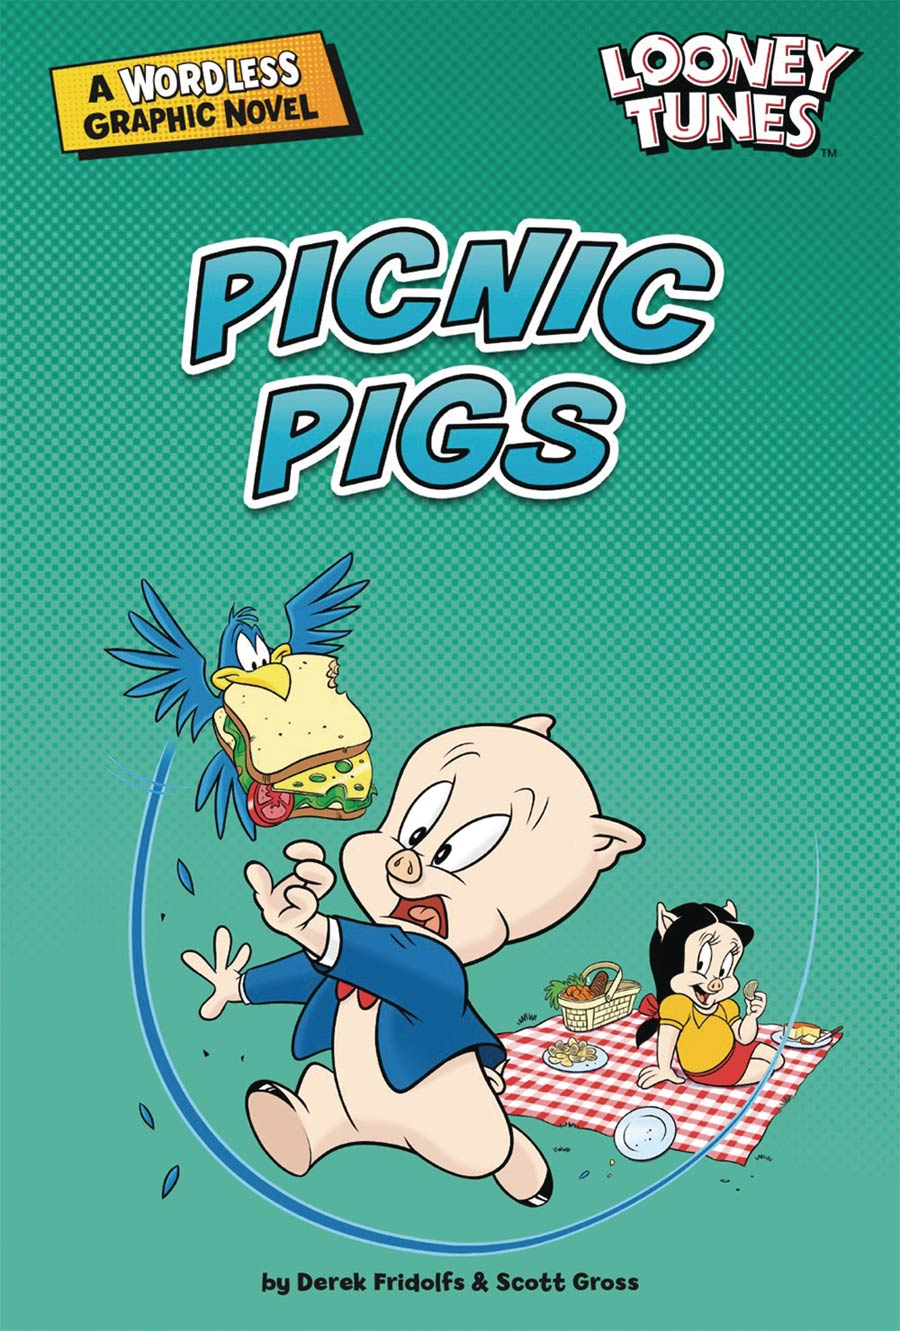 Looney Tunes A Wordless Graphic Novel Picnic Pigs TP